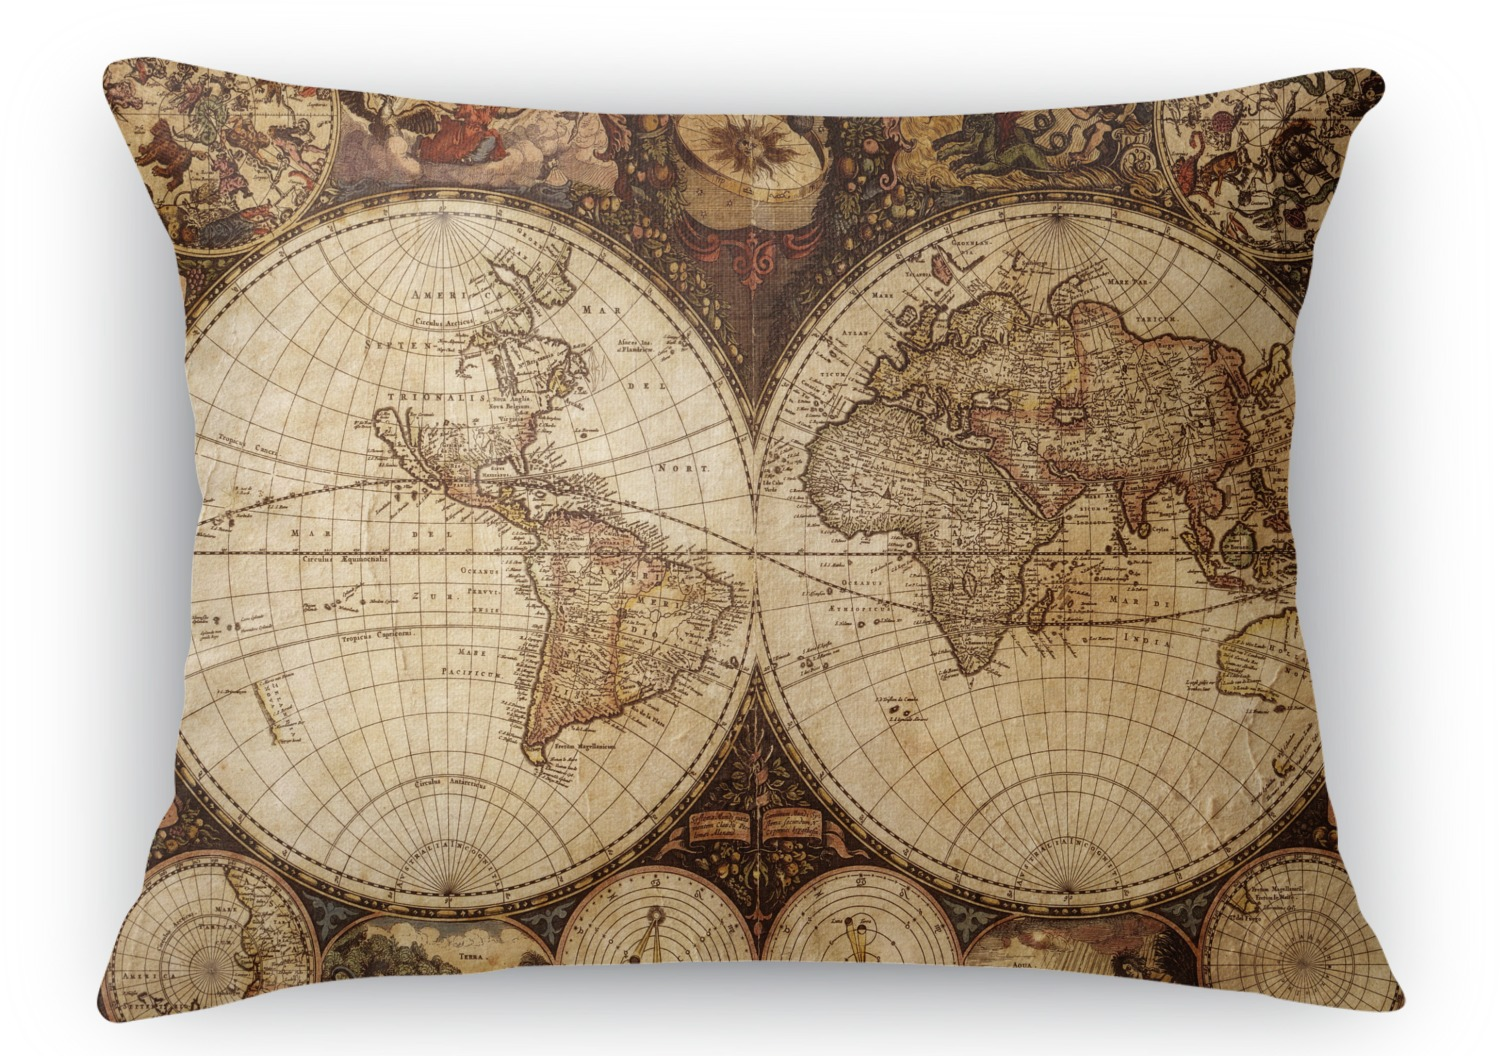 Throw Pillows With World Map : Vintage World Map Rectangular Throw Pillow - YouCustomizeIt